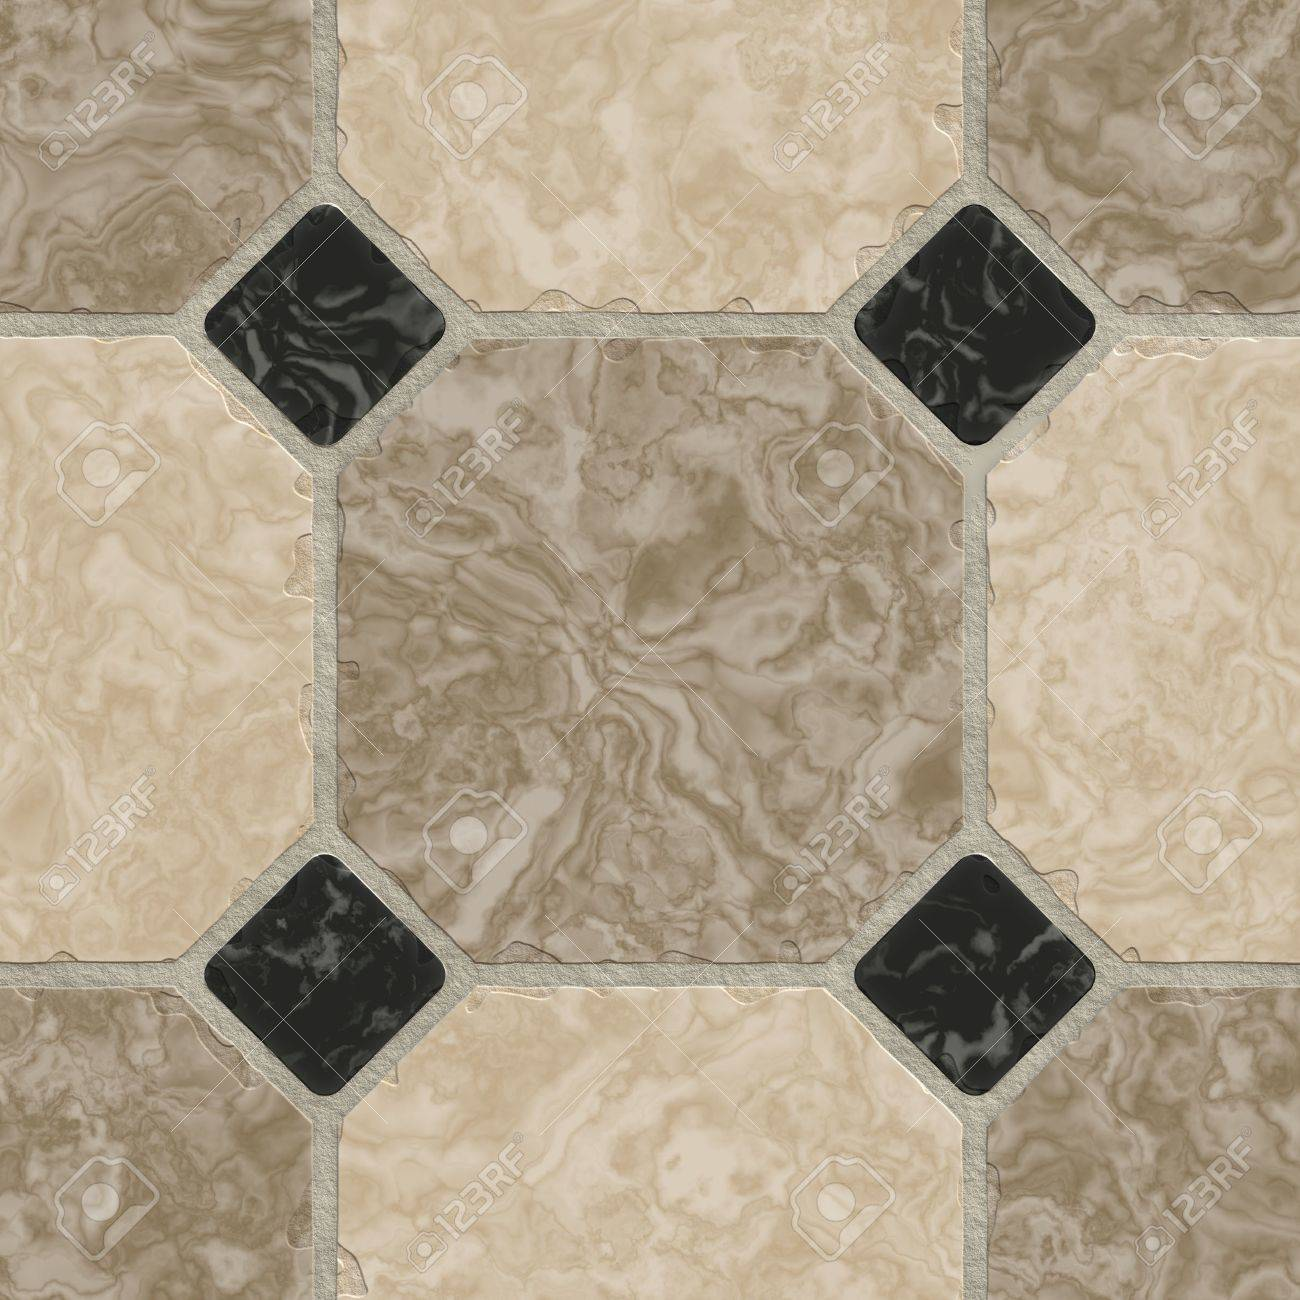 Kitchen Floor Tiles Texture Seamless Floor Tiles Stock Photo Picture And Royalty Free Image